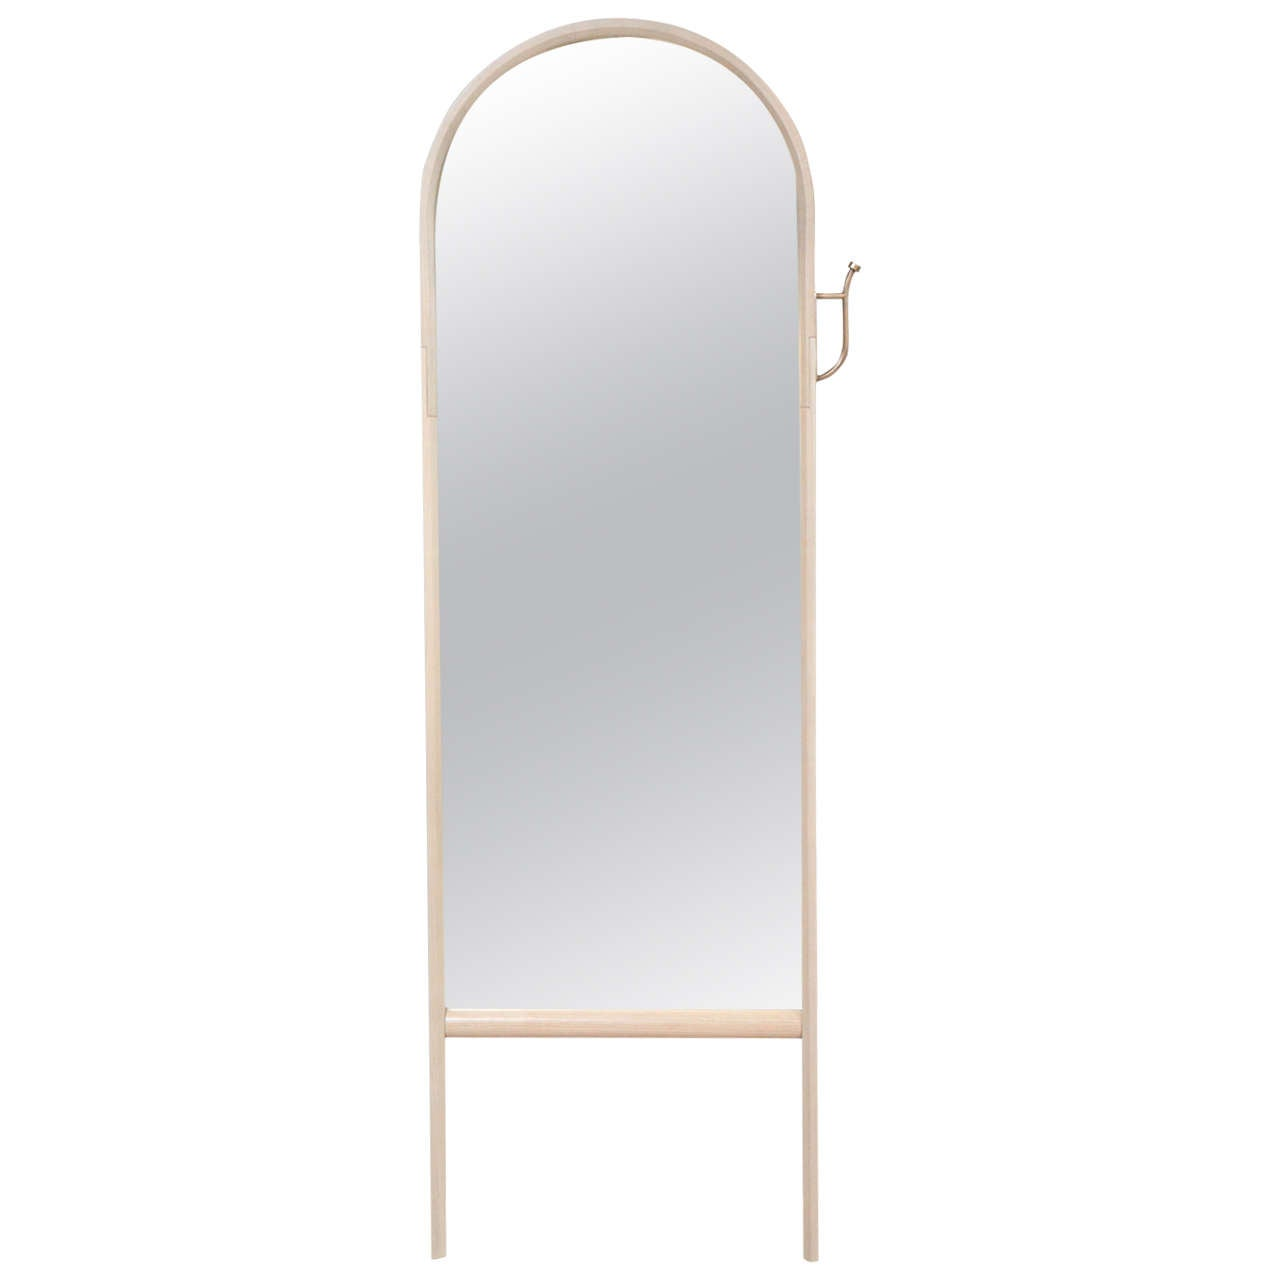 Paniolo Floor Mirror by O&G Studio in Oyster Stain on Ashwood